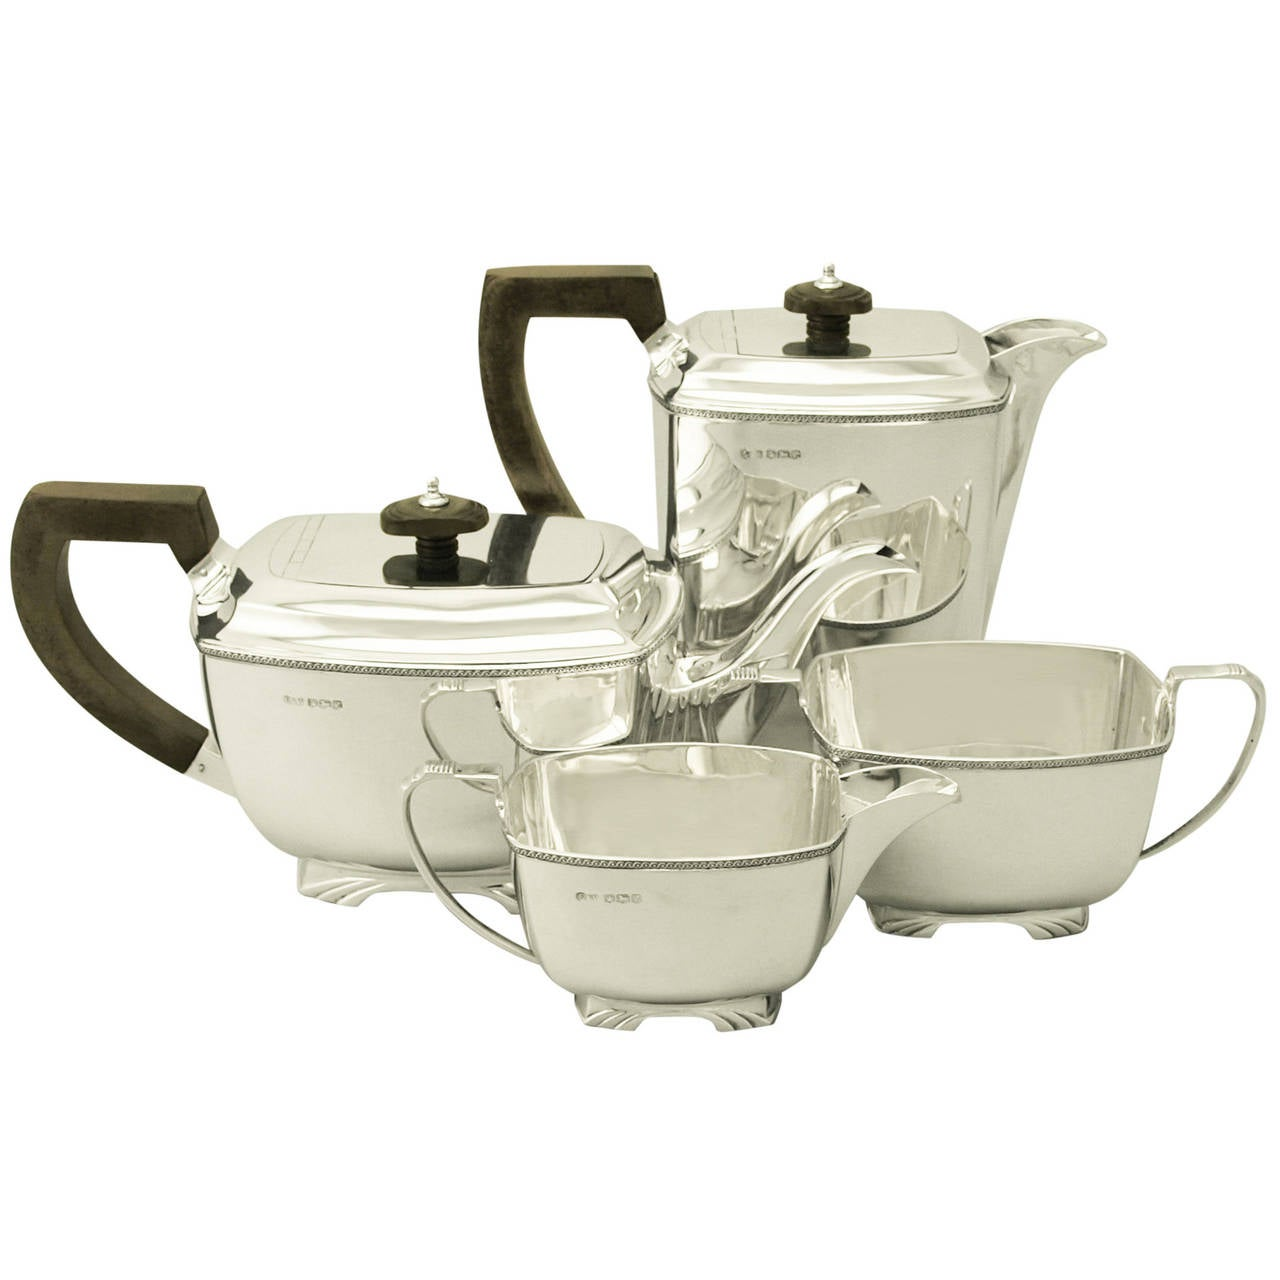 Vintage Sterling Silver Four-Piece Tea and Coffee Service, Art Deco Style